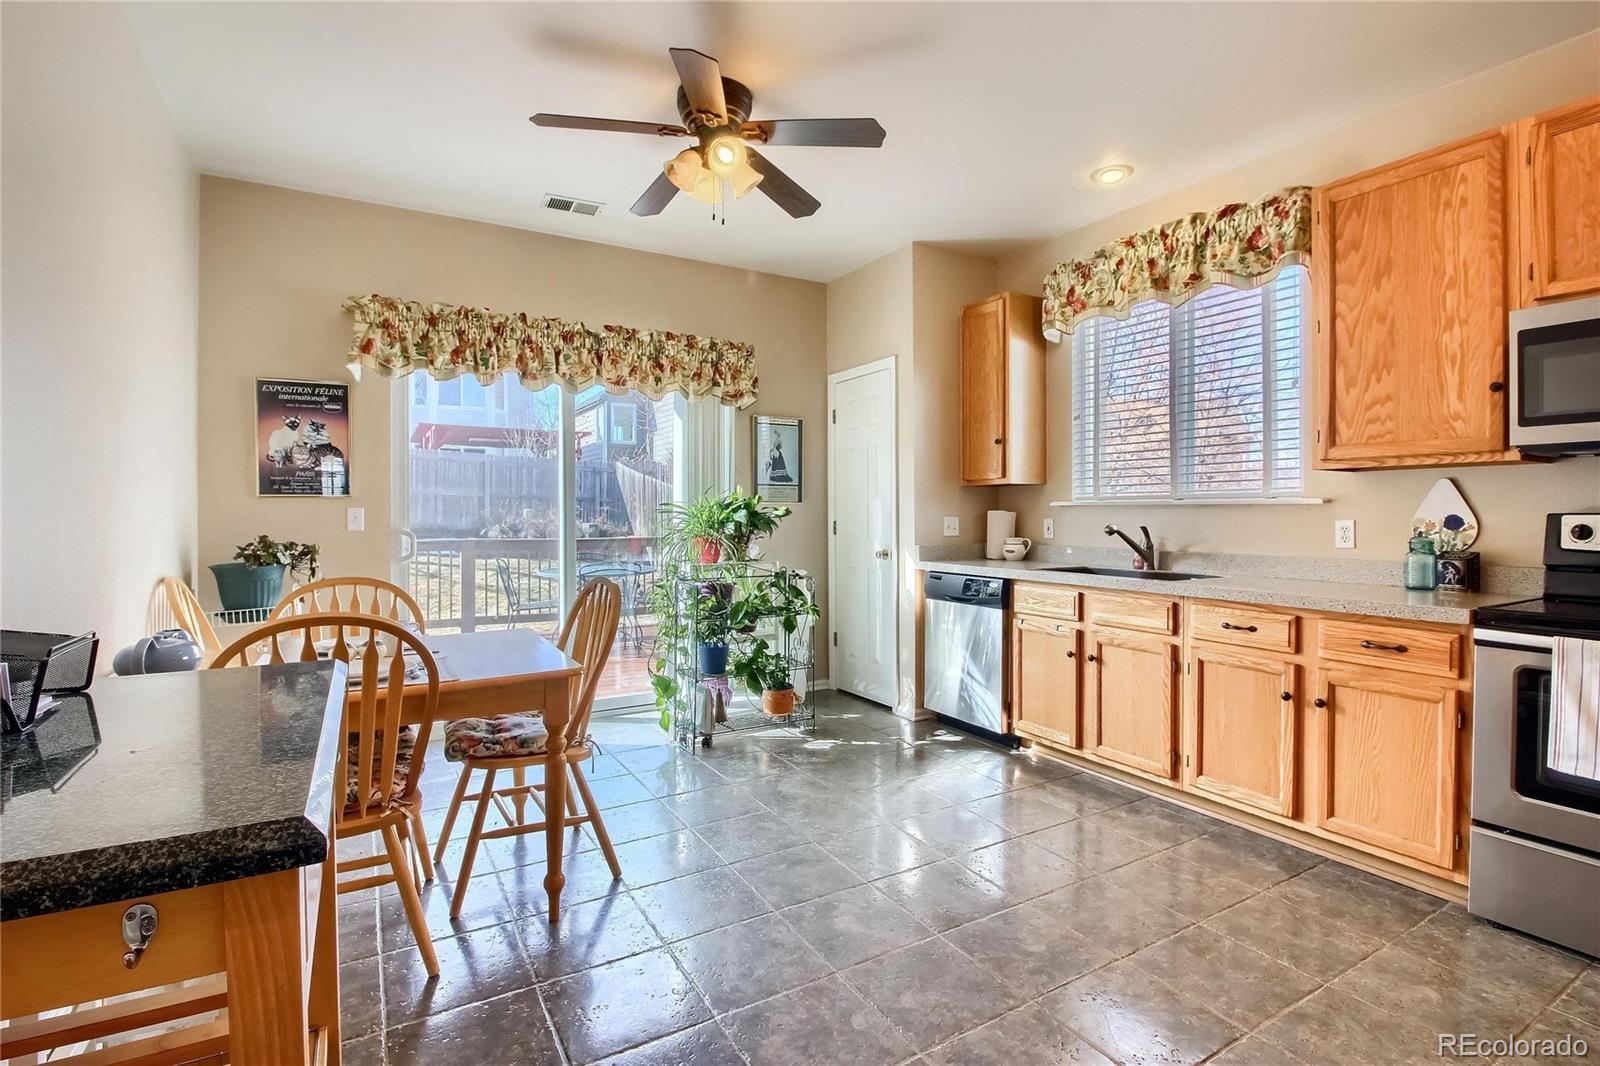 MLS# 4473839 - 7 - 20448 E Milan Place, Aurora, CO 80013